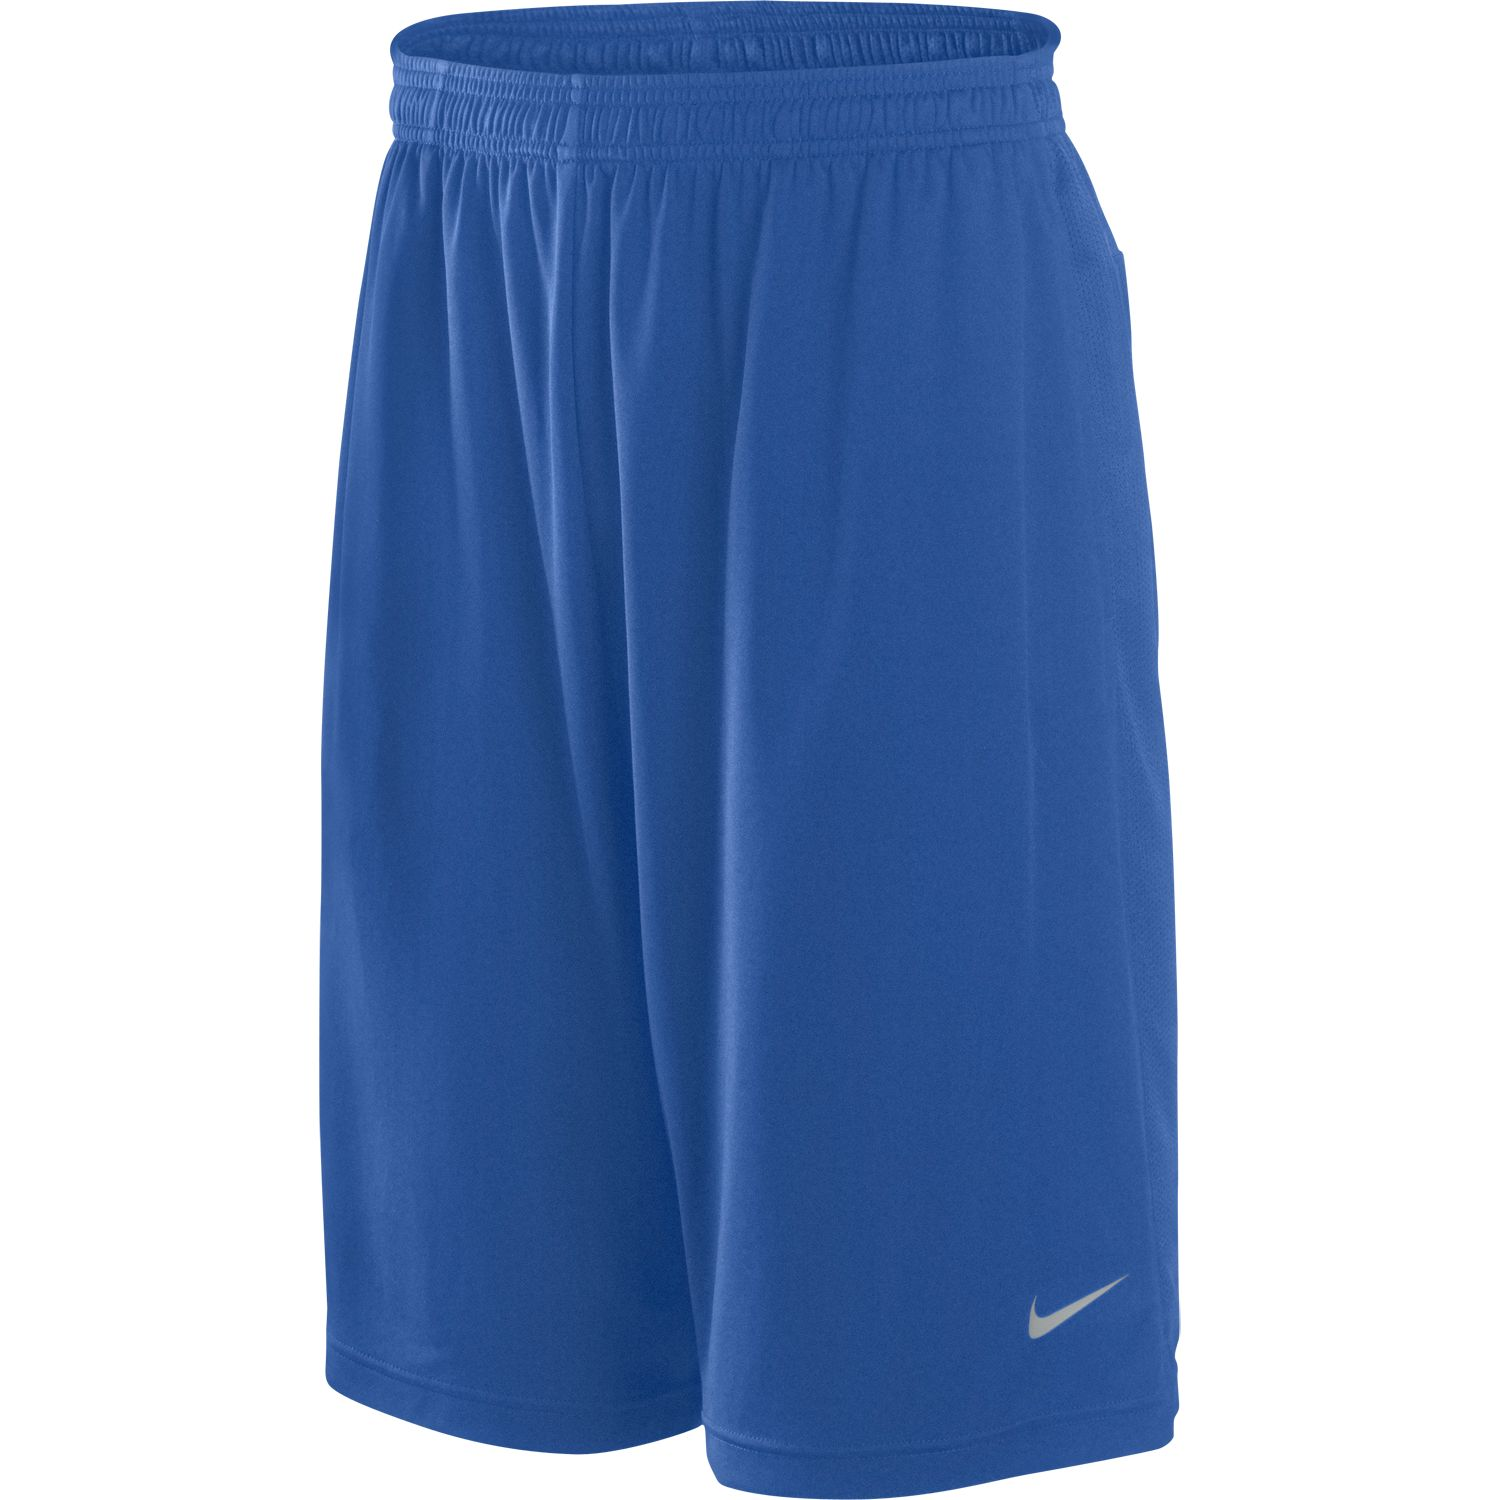 Men's Workout Shorts | DICK'S Sporting Goods